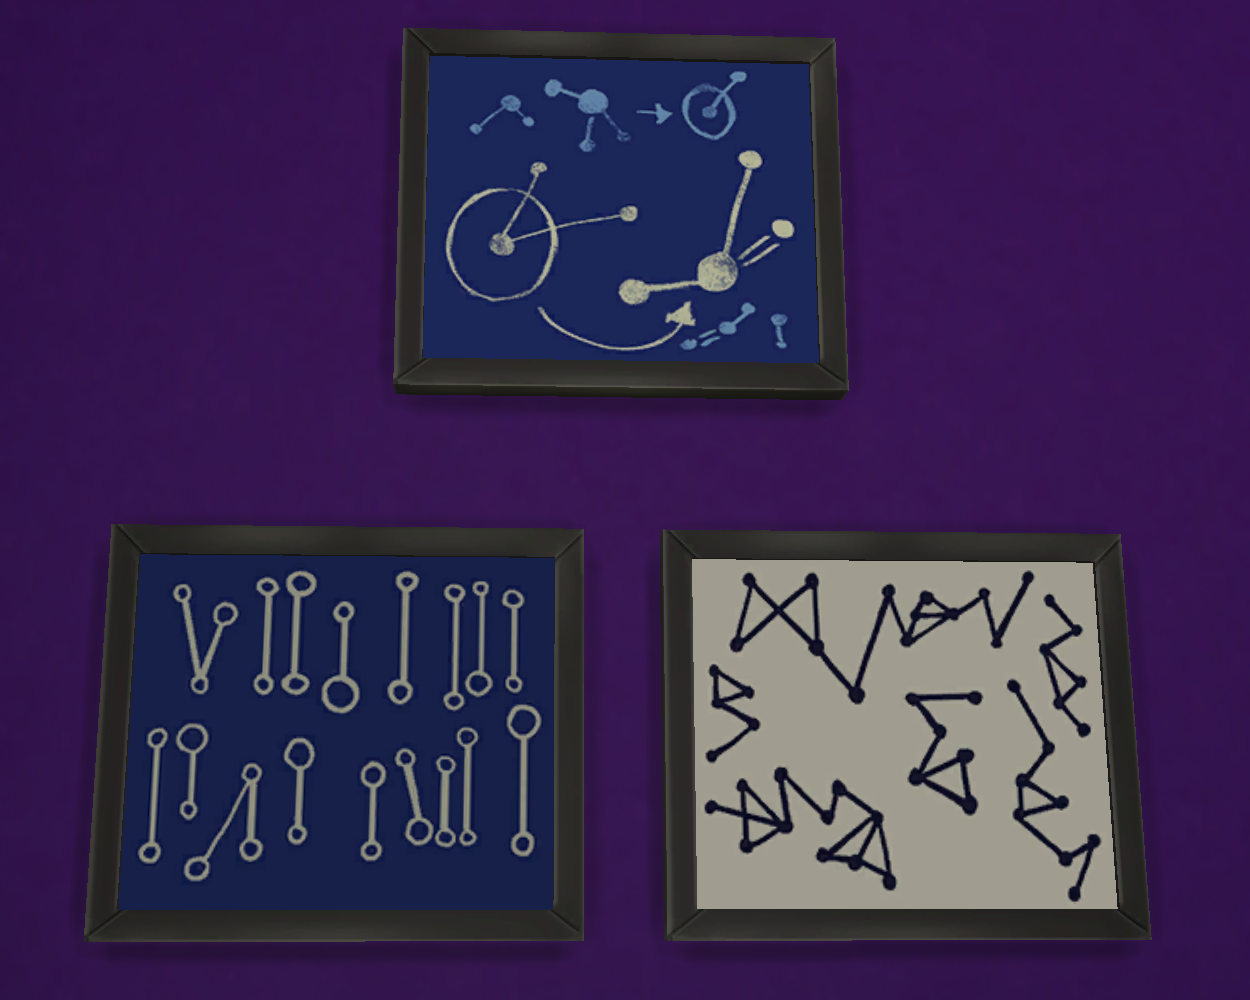 Sims 4 Mathematical Diagrams / Focused Paintings